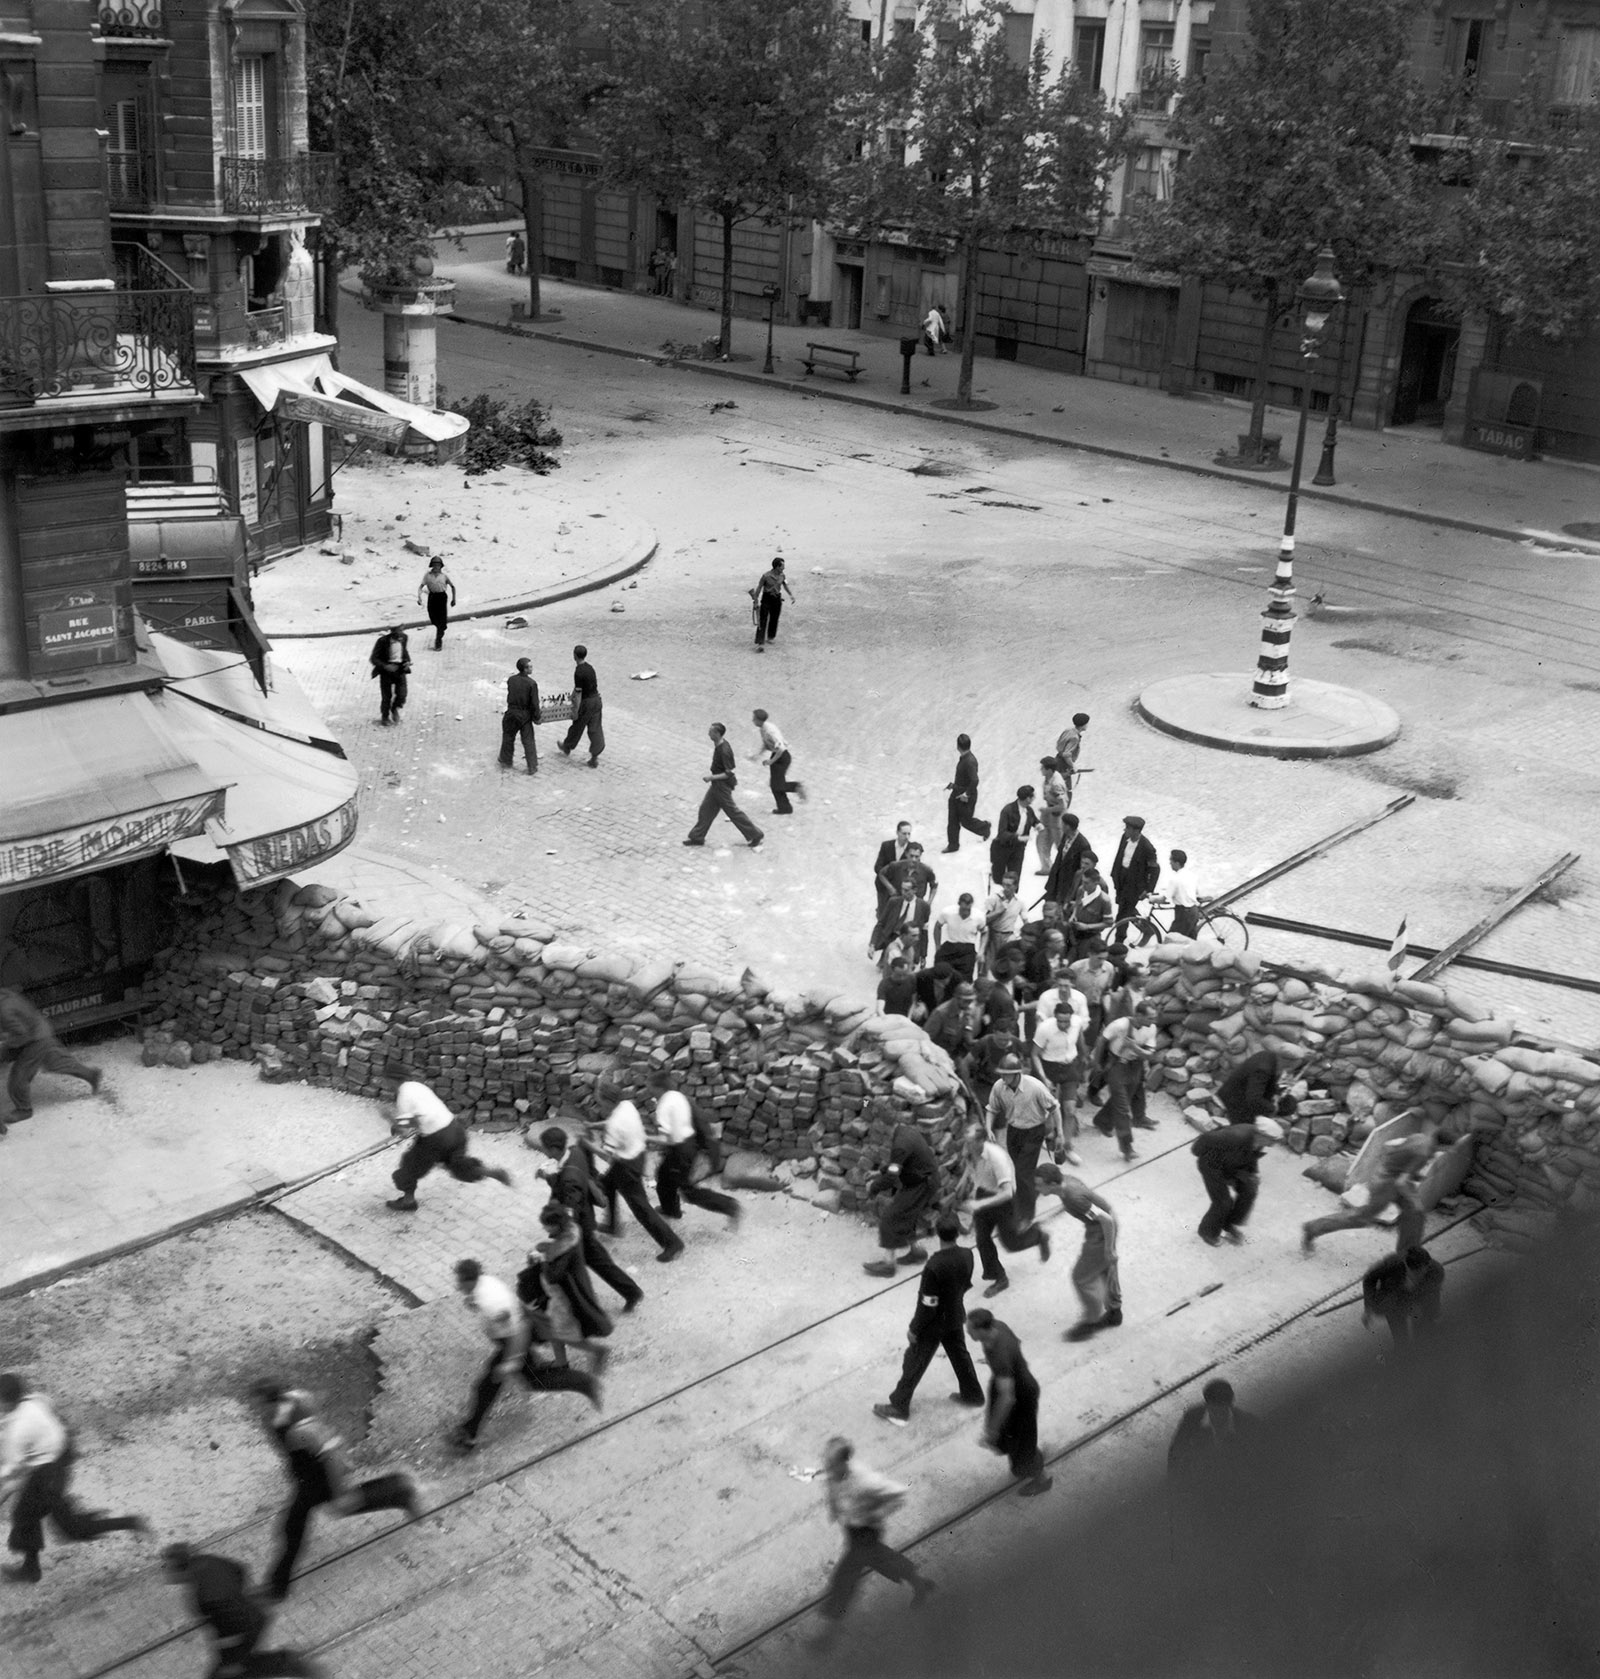 The French resistance erecting barriers in Paris to obstruct the German military as Allied forces approached the city